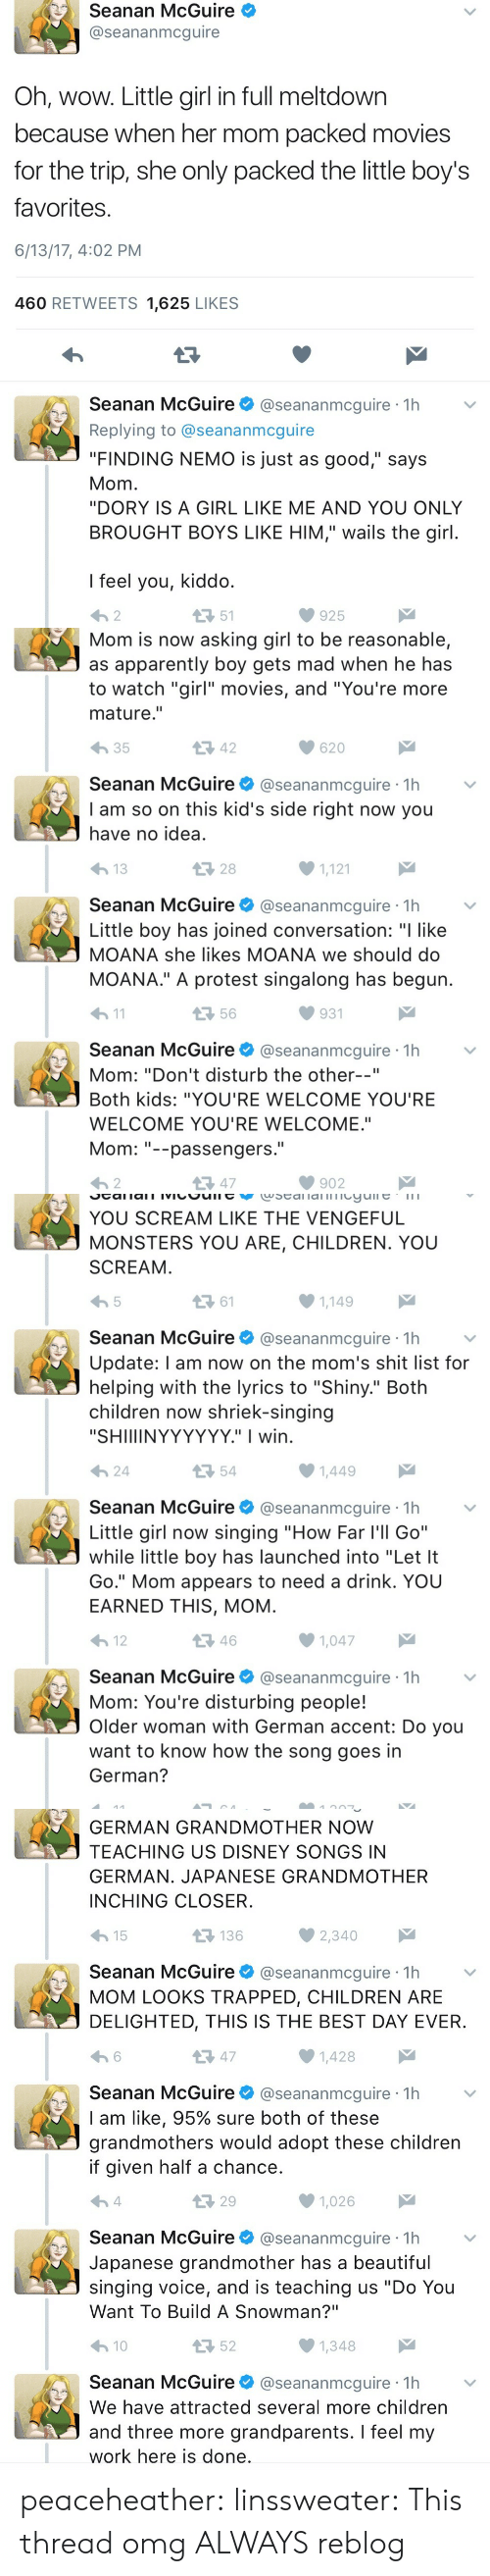 "Finding Nemo: Seanan McGuire  @seananmcguire  Oh, wow. Little girl in full meltdown  because when her mom packed movies  for the trip, she only packed the little boy's  favorites  6/13/17, 4:02 PM  460 RETWEETS 1,625 LIKES  Seanan McGuire@seananmcguire 1h  Replying to @seananmcguire  ""FINDING NEMO is just as good,"" says  Mom  ""DORY IS A GIRL LIKE ME AND YOU ONLY  BROUGHT BOYS LIKE HIM,"" wails the girl  I feel you, kiddo  わ2  51  925   Mom is now asking girl to be reasonable,  as apparently boy gets mad when he has  to watch ""girl"" movies, and ""You're more  mature.""  わ35  42  620  Seanan McGuire@seananmcguire 1h  I am so on this kid's side right now you  have no idea  28  1,121  Seanan McGuire@seananmcguire 1h  Little boy has joined conversation: ""I like  MOANA she likes MOANA we should do  MOANA."" A protest singalong has begun  h1  56  931  Seanan McGuire@seananmcguire 1h  Mom: ""Don't disturb the other--""  Both kids: ""YOU'RE WELCOME YOU'RE  WELCOME YOU'RE WELCOME.""  Mom--passengers.  わ2  다 47  902   YOU SCREAM LIKE THE VENGEFUL  MONSTERS YOU ARE, CHILDREN. YOU  SCREAM  ロ61  1,149  Seanan McGuire@seananmcguire 1h  Update: l am now on the mom's shit list for  helping with the lyrics to ""Shiny."" Both  children now shriek-singing  ""SHIIIINYYYYYY."" I wirn  24  54  Seanan McGuireネ@seananmcgure·1h  Little girl now singing ""How Far l'll Go""  while little boy has launched into ""Let It  Go."" Mom appears to need a drink. YOU  EARNED THIS, MOM  12  46  1,047  Seanan McGuire@seananmcguire 1h  Mom: You're disturbing people!  Older woman with German accent: Do you  want to know how the song goes in  German?   GERMAN GRANDMOTHER NOW  TEACHING US DISNEY SONGS IN  GERMAN. JAPANESE GRANDMOTHER  INCHING CLOSER  15  136  Seanan McGuire@seananmcguire 1h  MOM LOOKS TRAPPED, CHILDREN ARE  DELIGHTED, THIS IS THE BEST DAY EVER  13 47  1,428  Seanan McGuire@seananmcguire 1h  I am like, 95% sure both of these  grandmothers would adopt these children  if given half a chance  29  1,026  Seanan McGuire @seananmcguire·1h  Japanese grandmother has a beautiful  singing voice, and is teaching us ""Do You  Want To Build A Snowman?""  10  52  Seanan McGuire@seananmcguire 1h  We have attracted several more children  and three more grandparents. I feel my  work here is done peaceheather:  linssweater: This thread omg ALWAYS reblog"